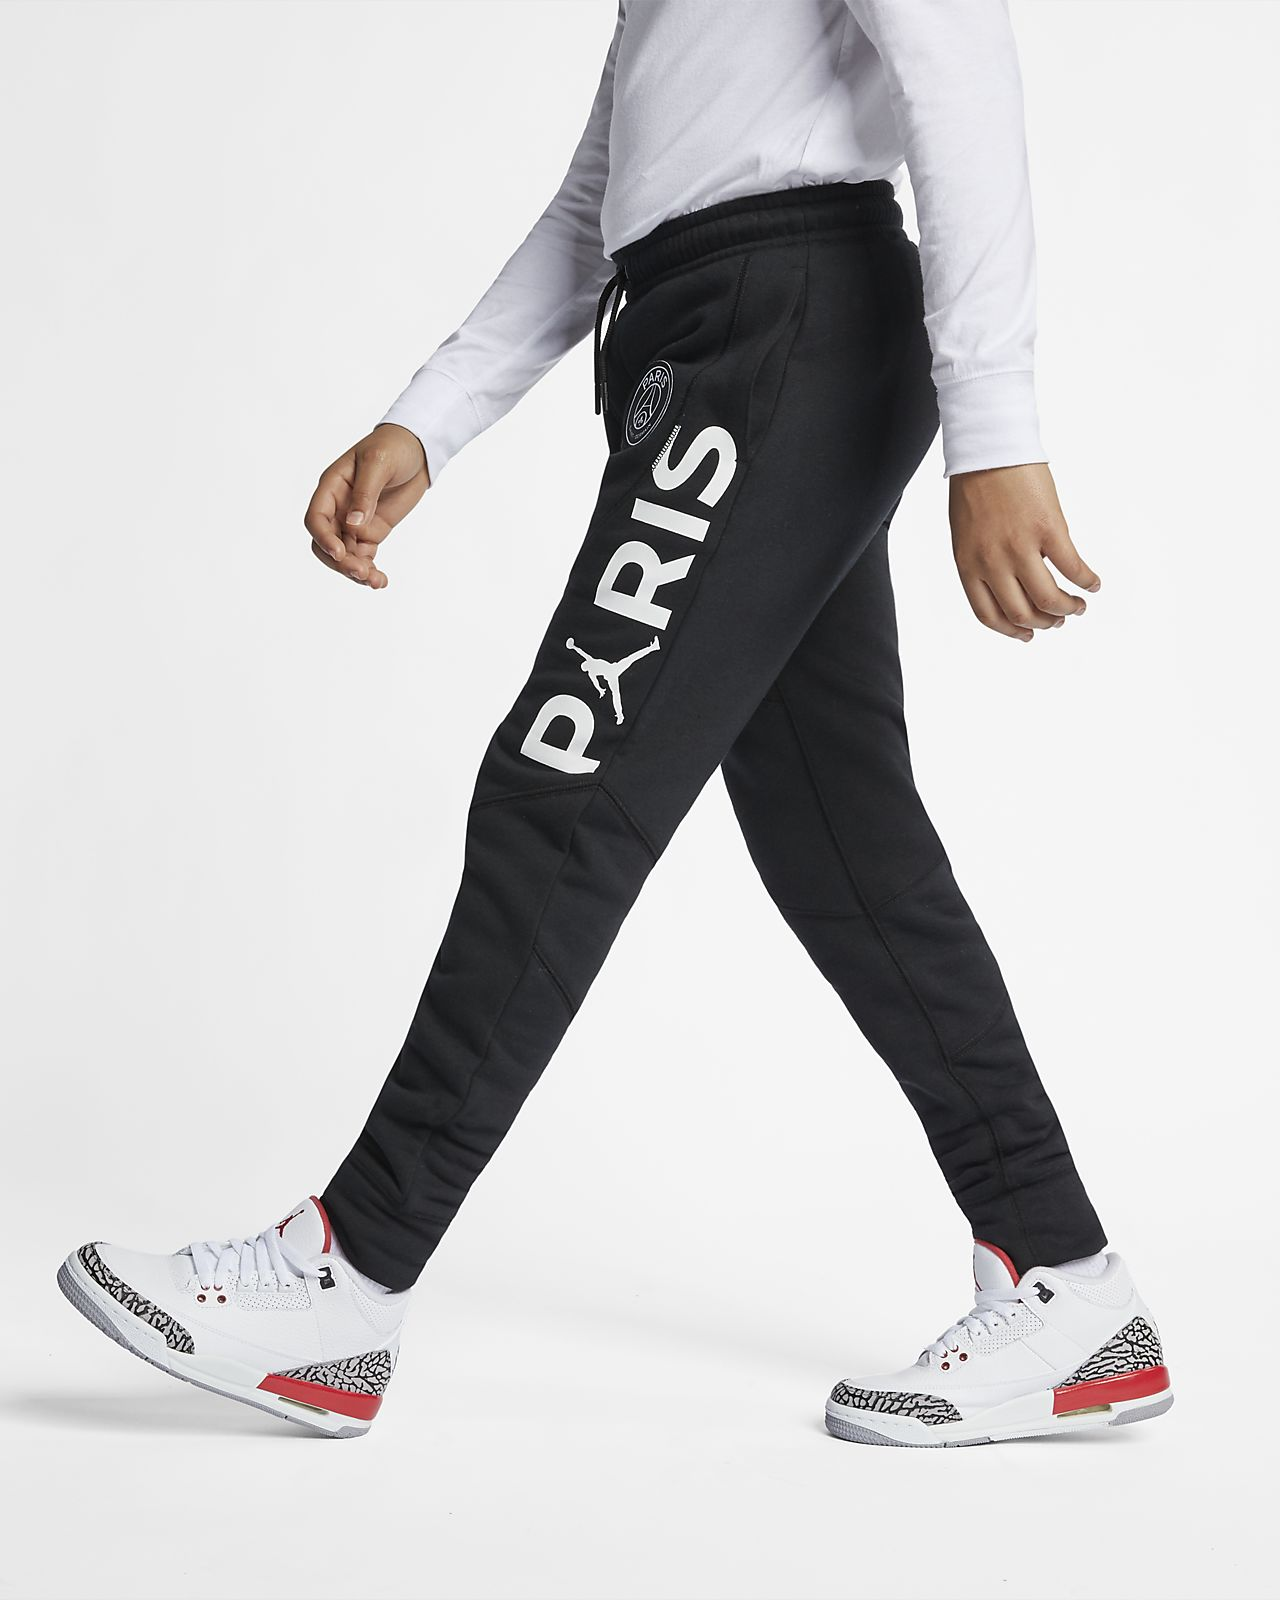 Flight Knit Kids'boys'Pants Older Flight Older Psg Psg Knit Kids'boys'Pants 29EDIWH